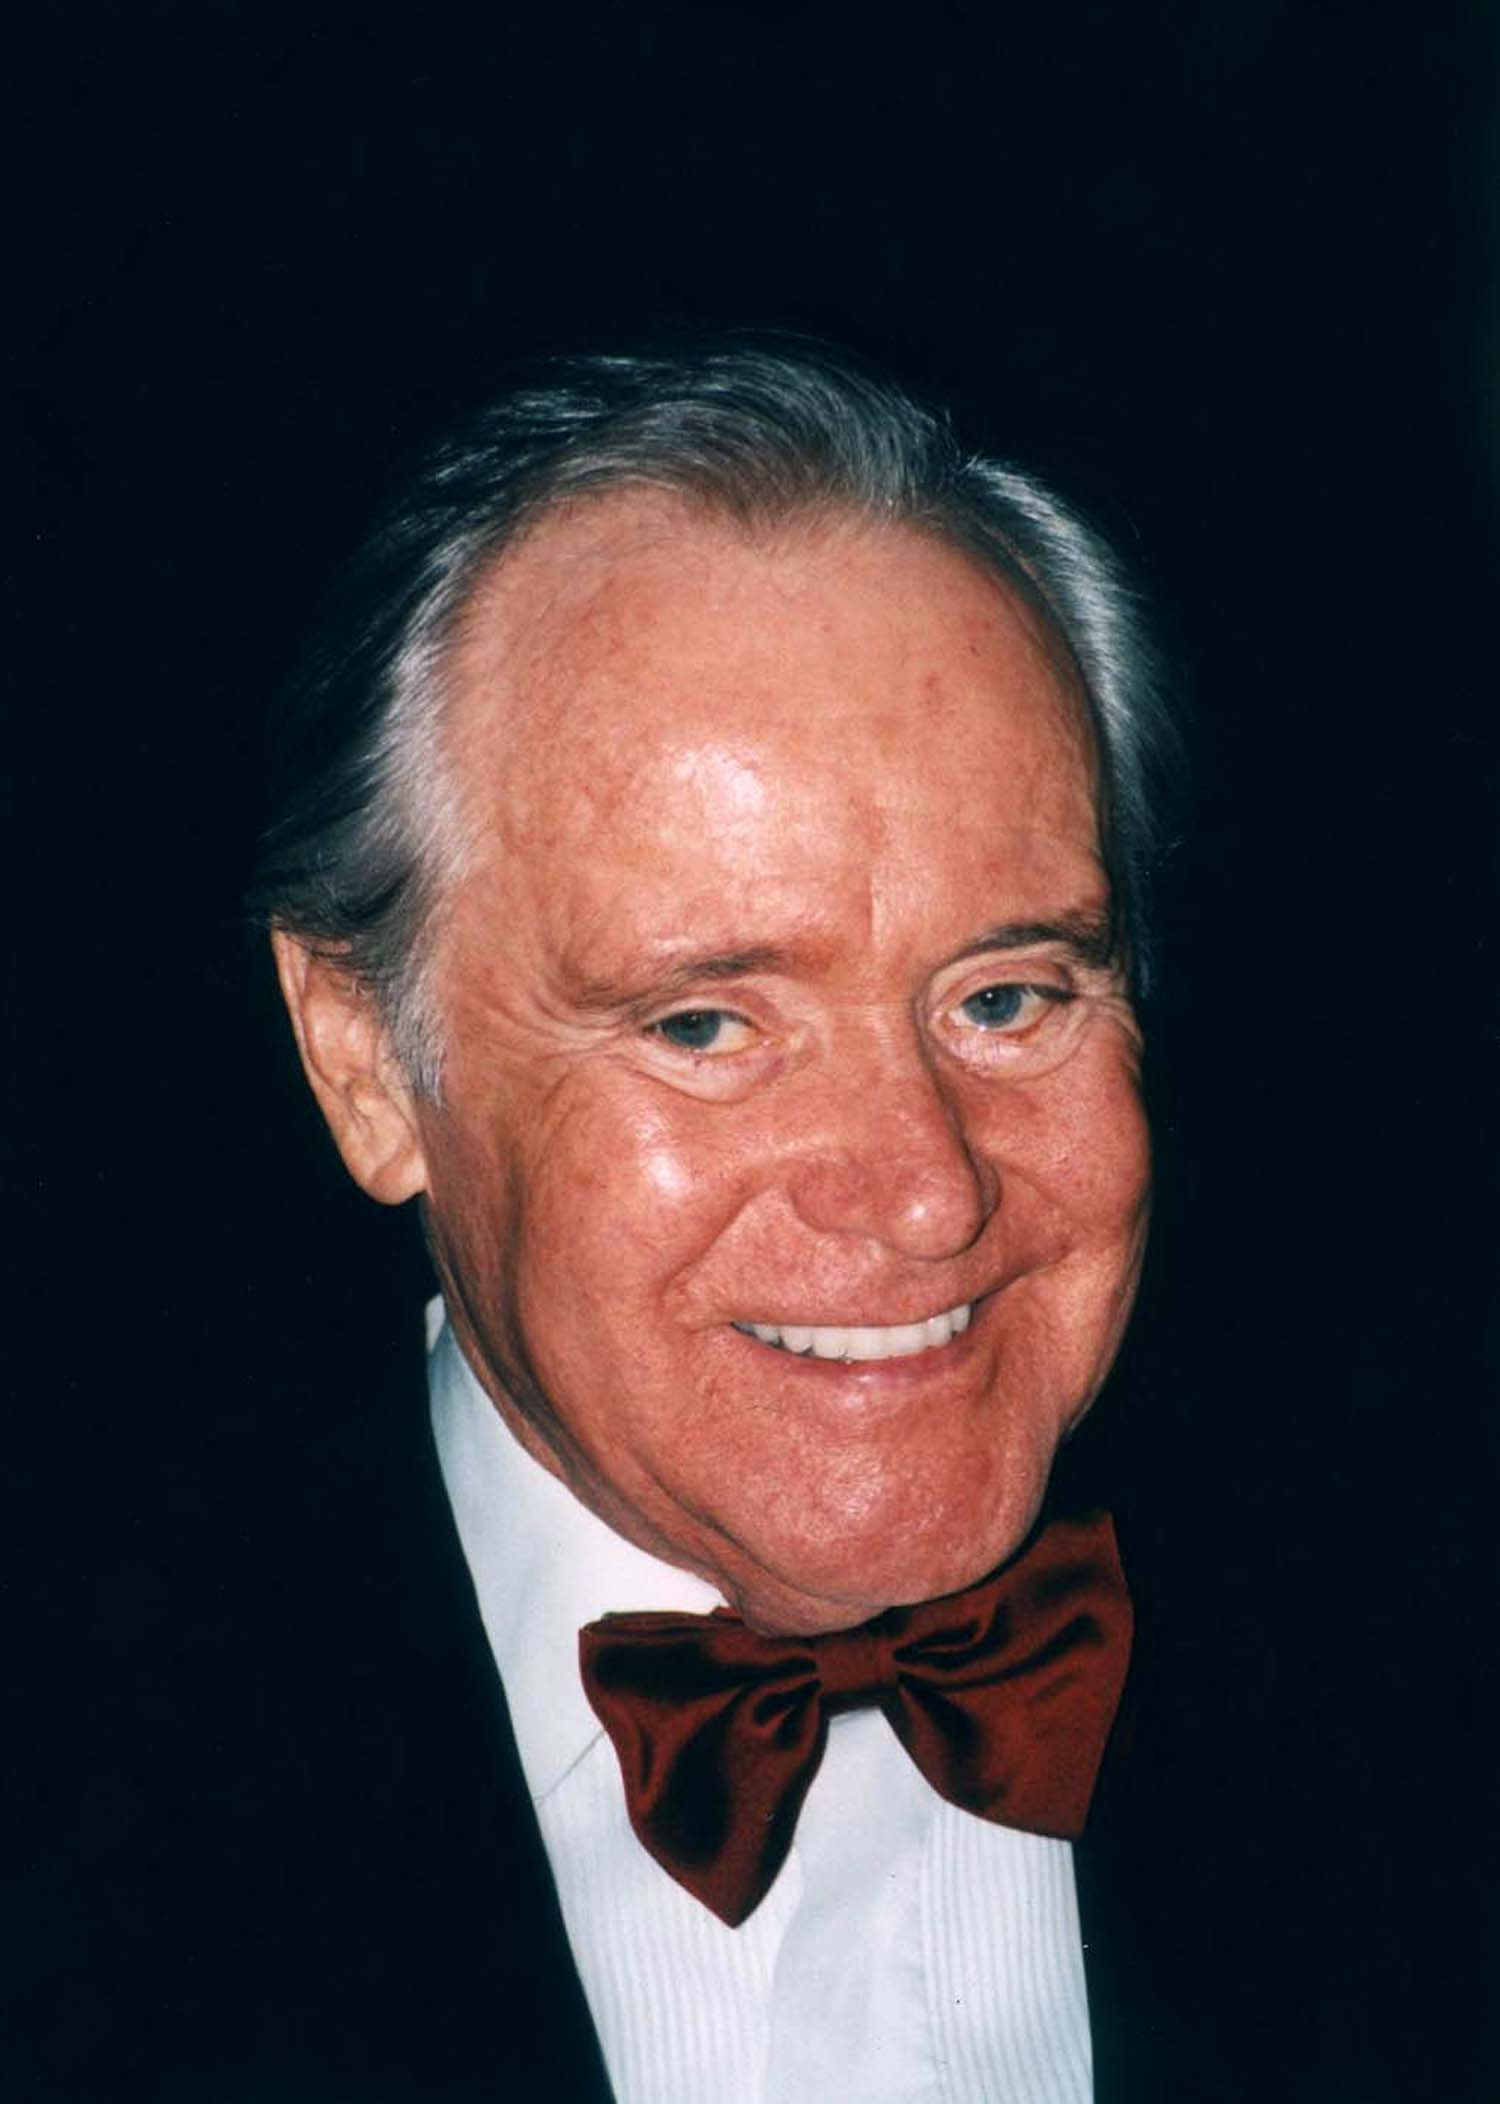 A photo of actor Jack Lemmon from 2002. | Source: Wikimedia Commons